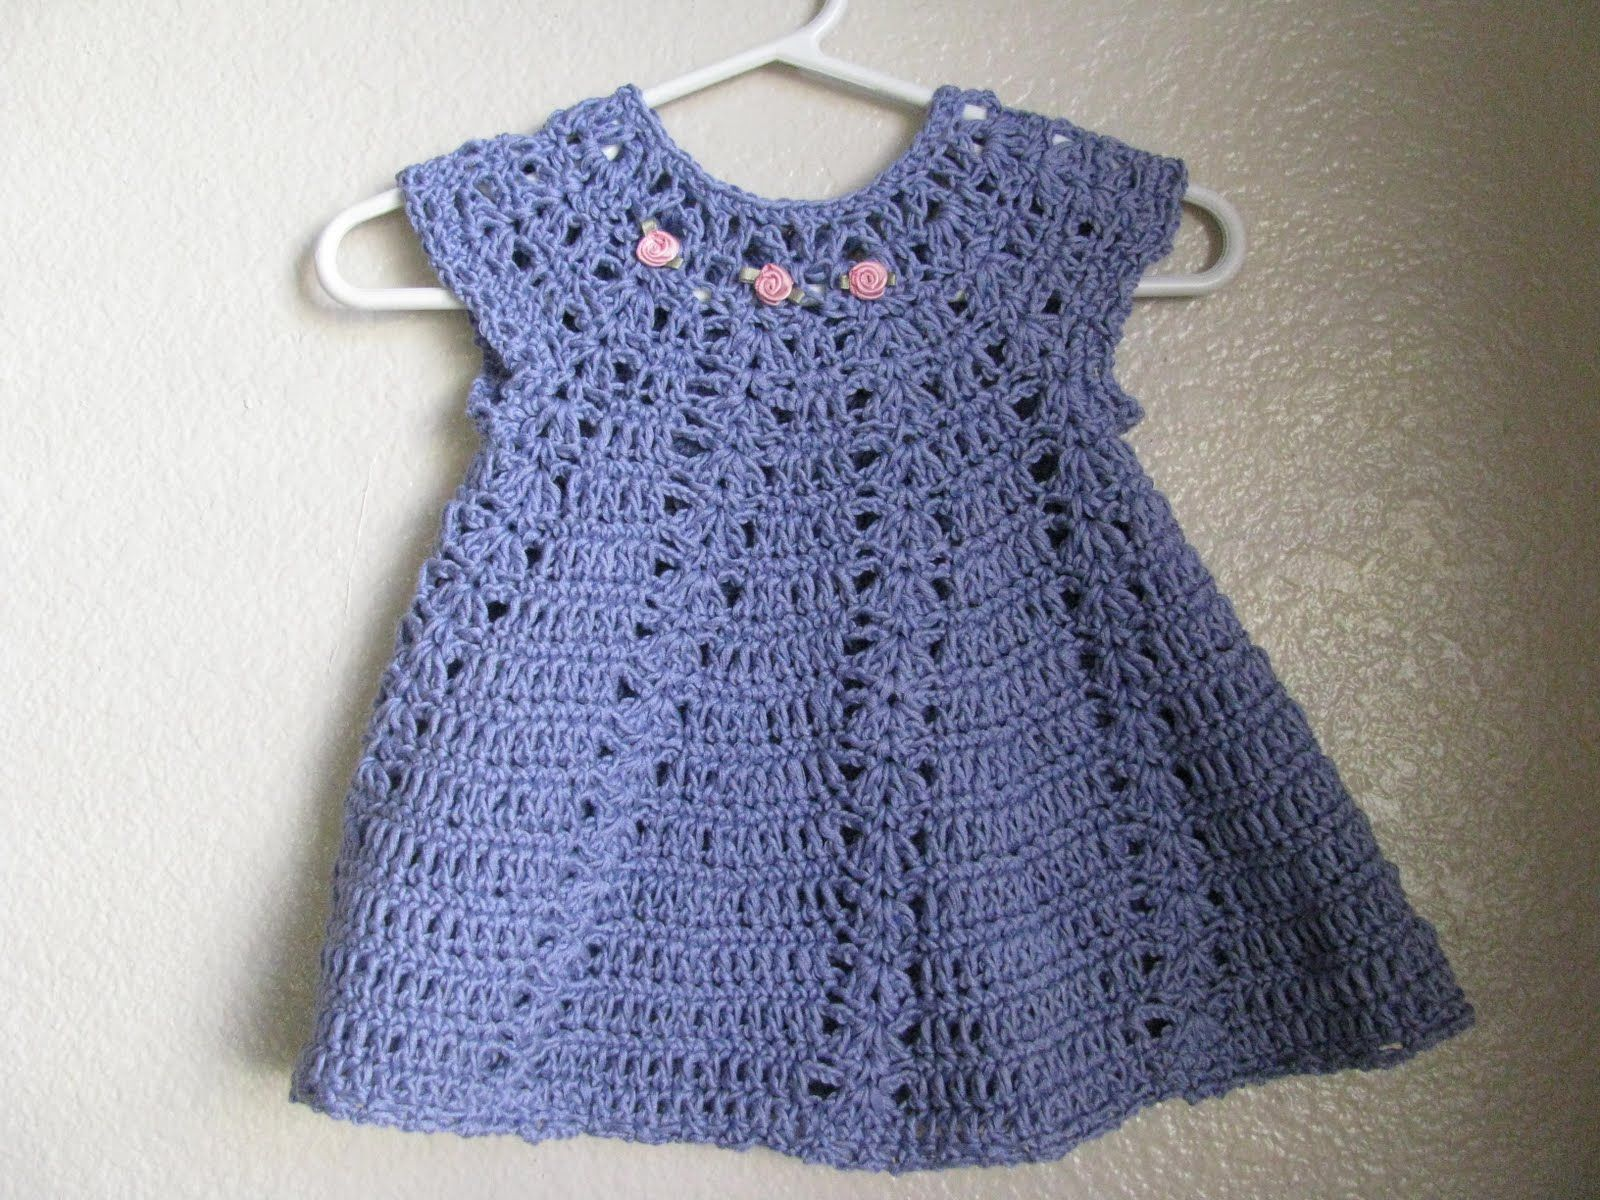 Free patterns for baby crochet dresses my first crocheted baby free patterns for baby crochet dresses my first crocheted baby dress finished bankloansurffo Choice Image